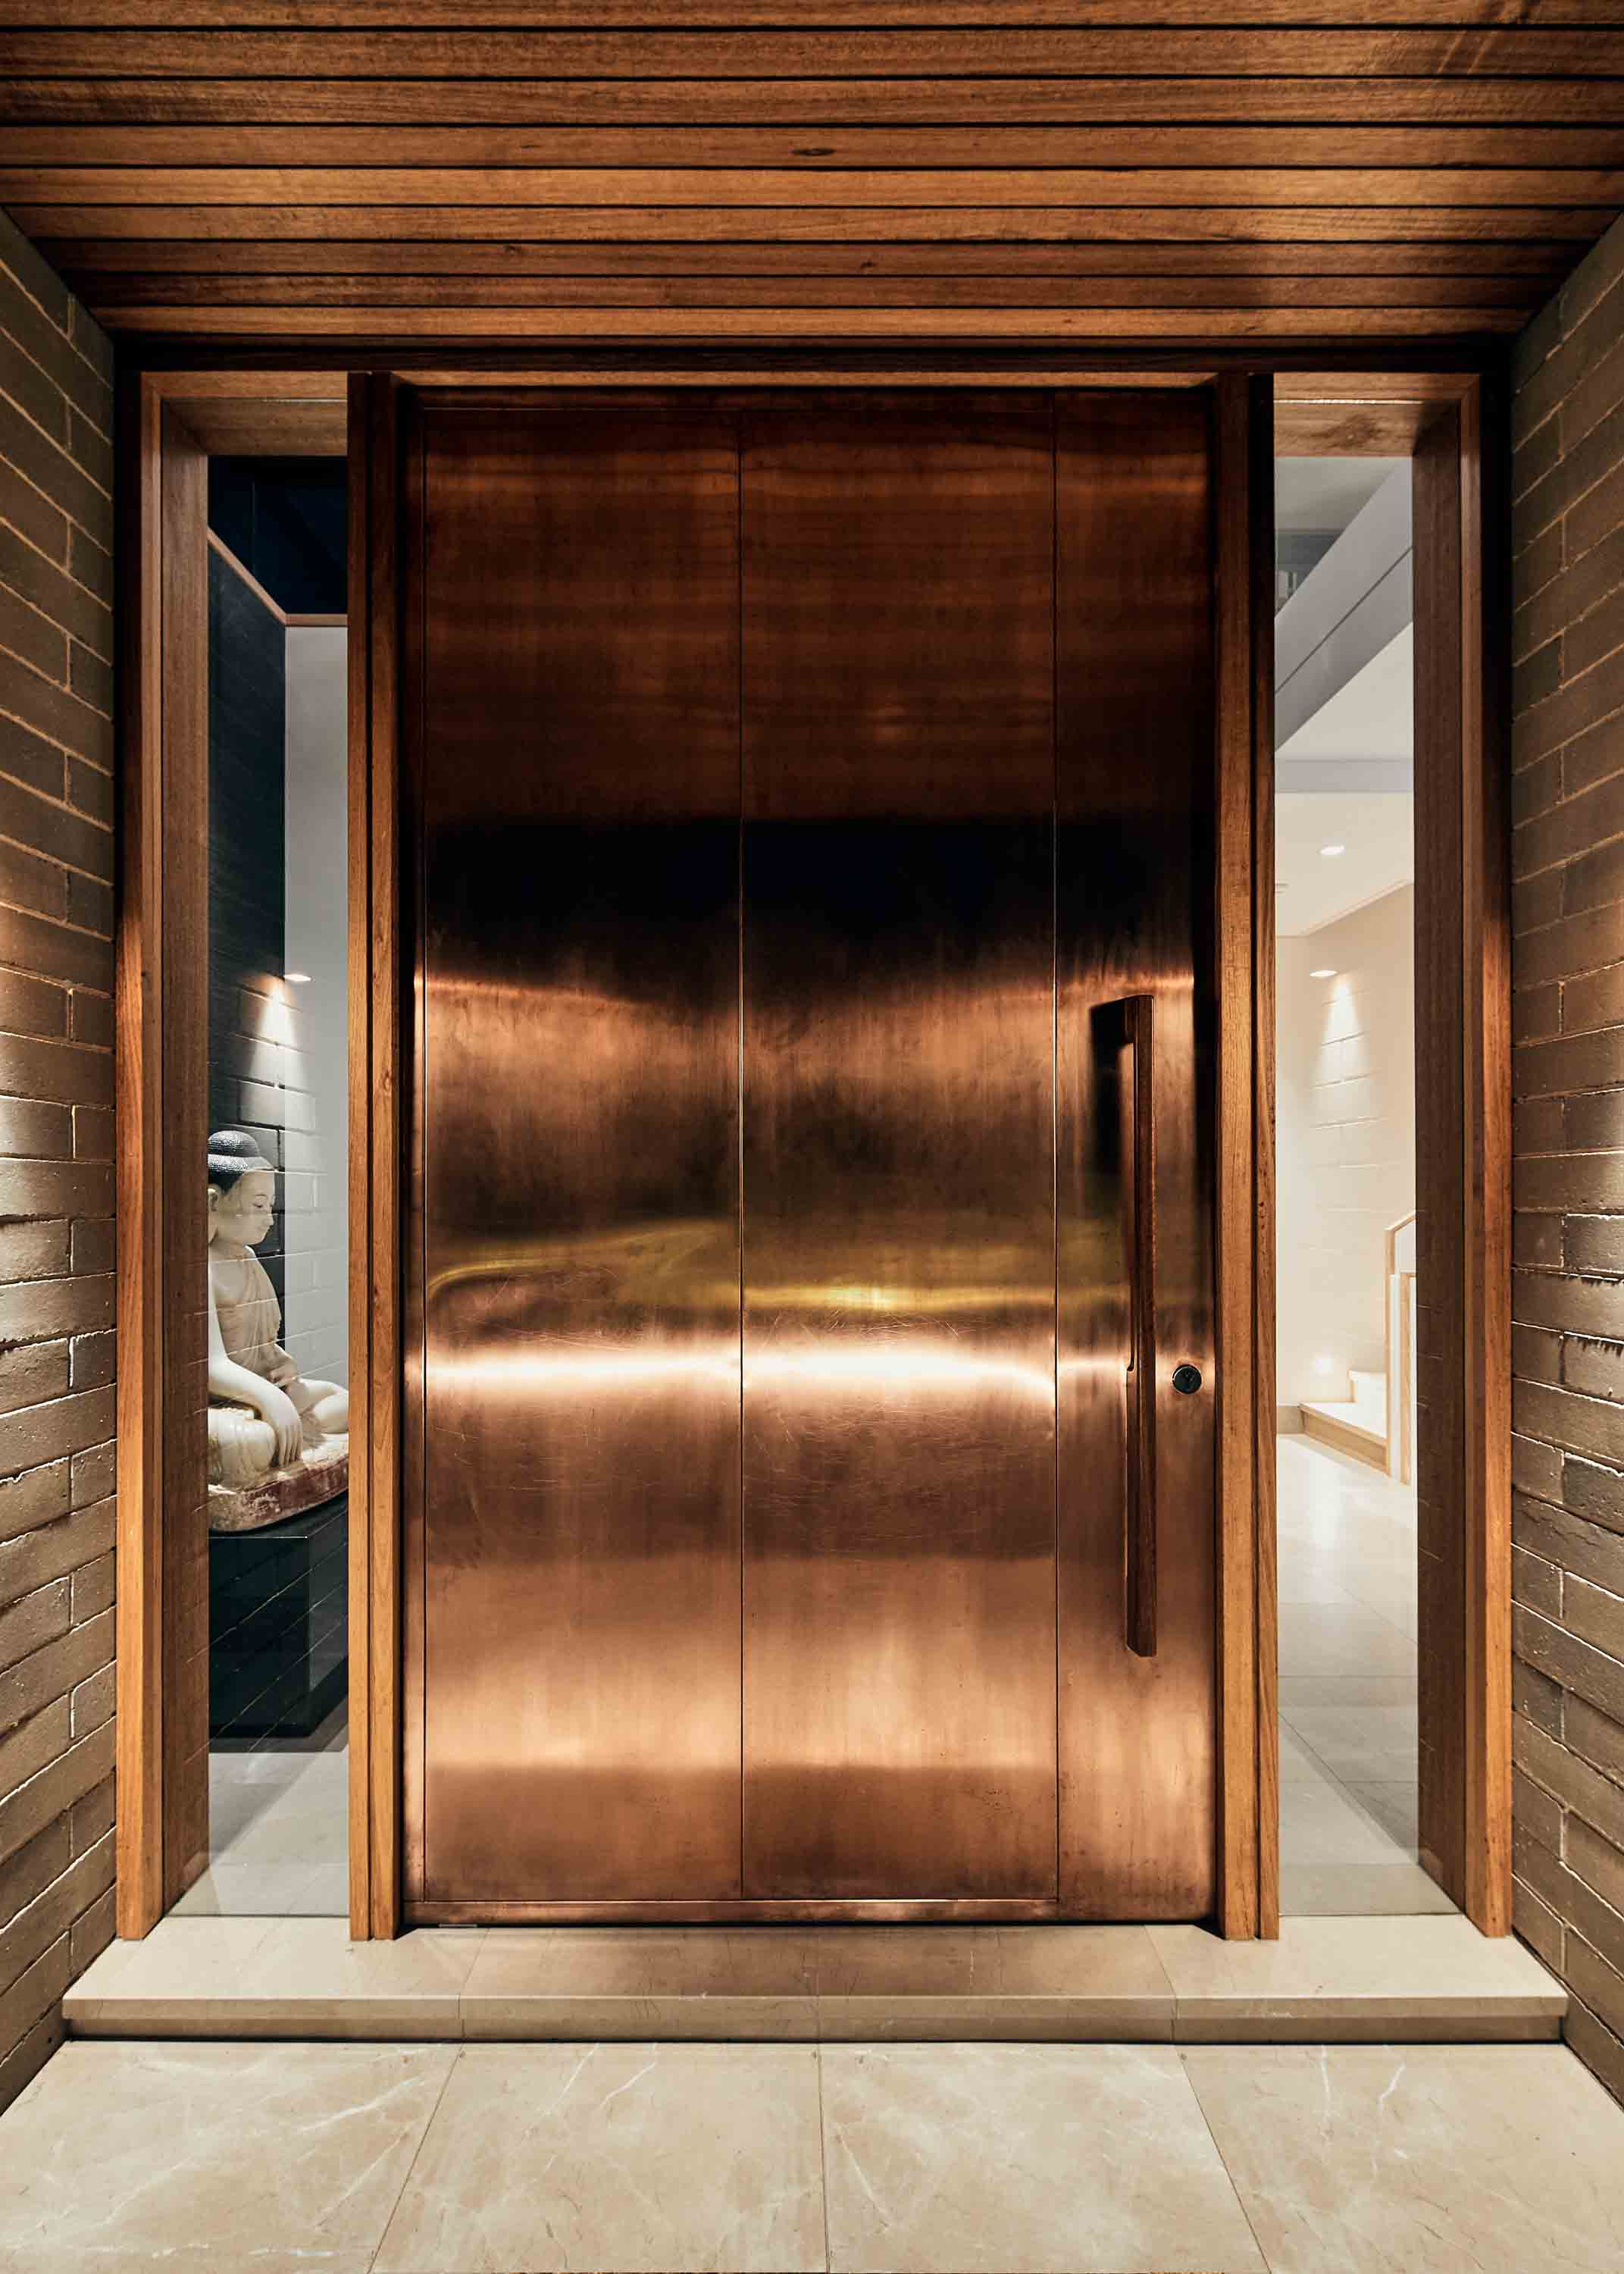 Copper entrance pivot door with System M pivot hinge, designed by Porebski Architects, built by Cumberland Building, photographed by Peter Bennetts